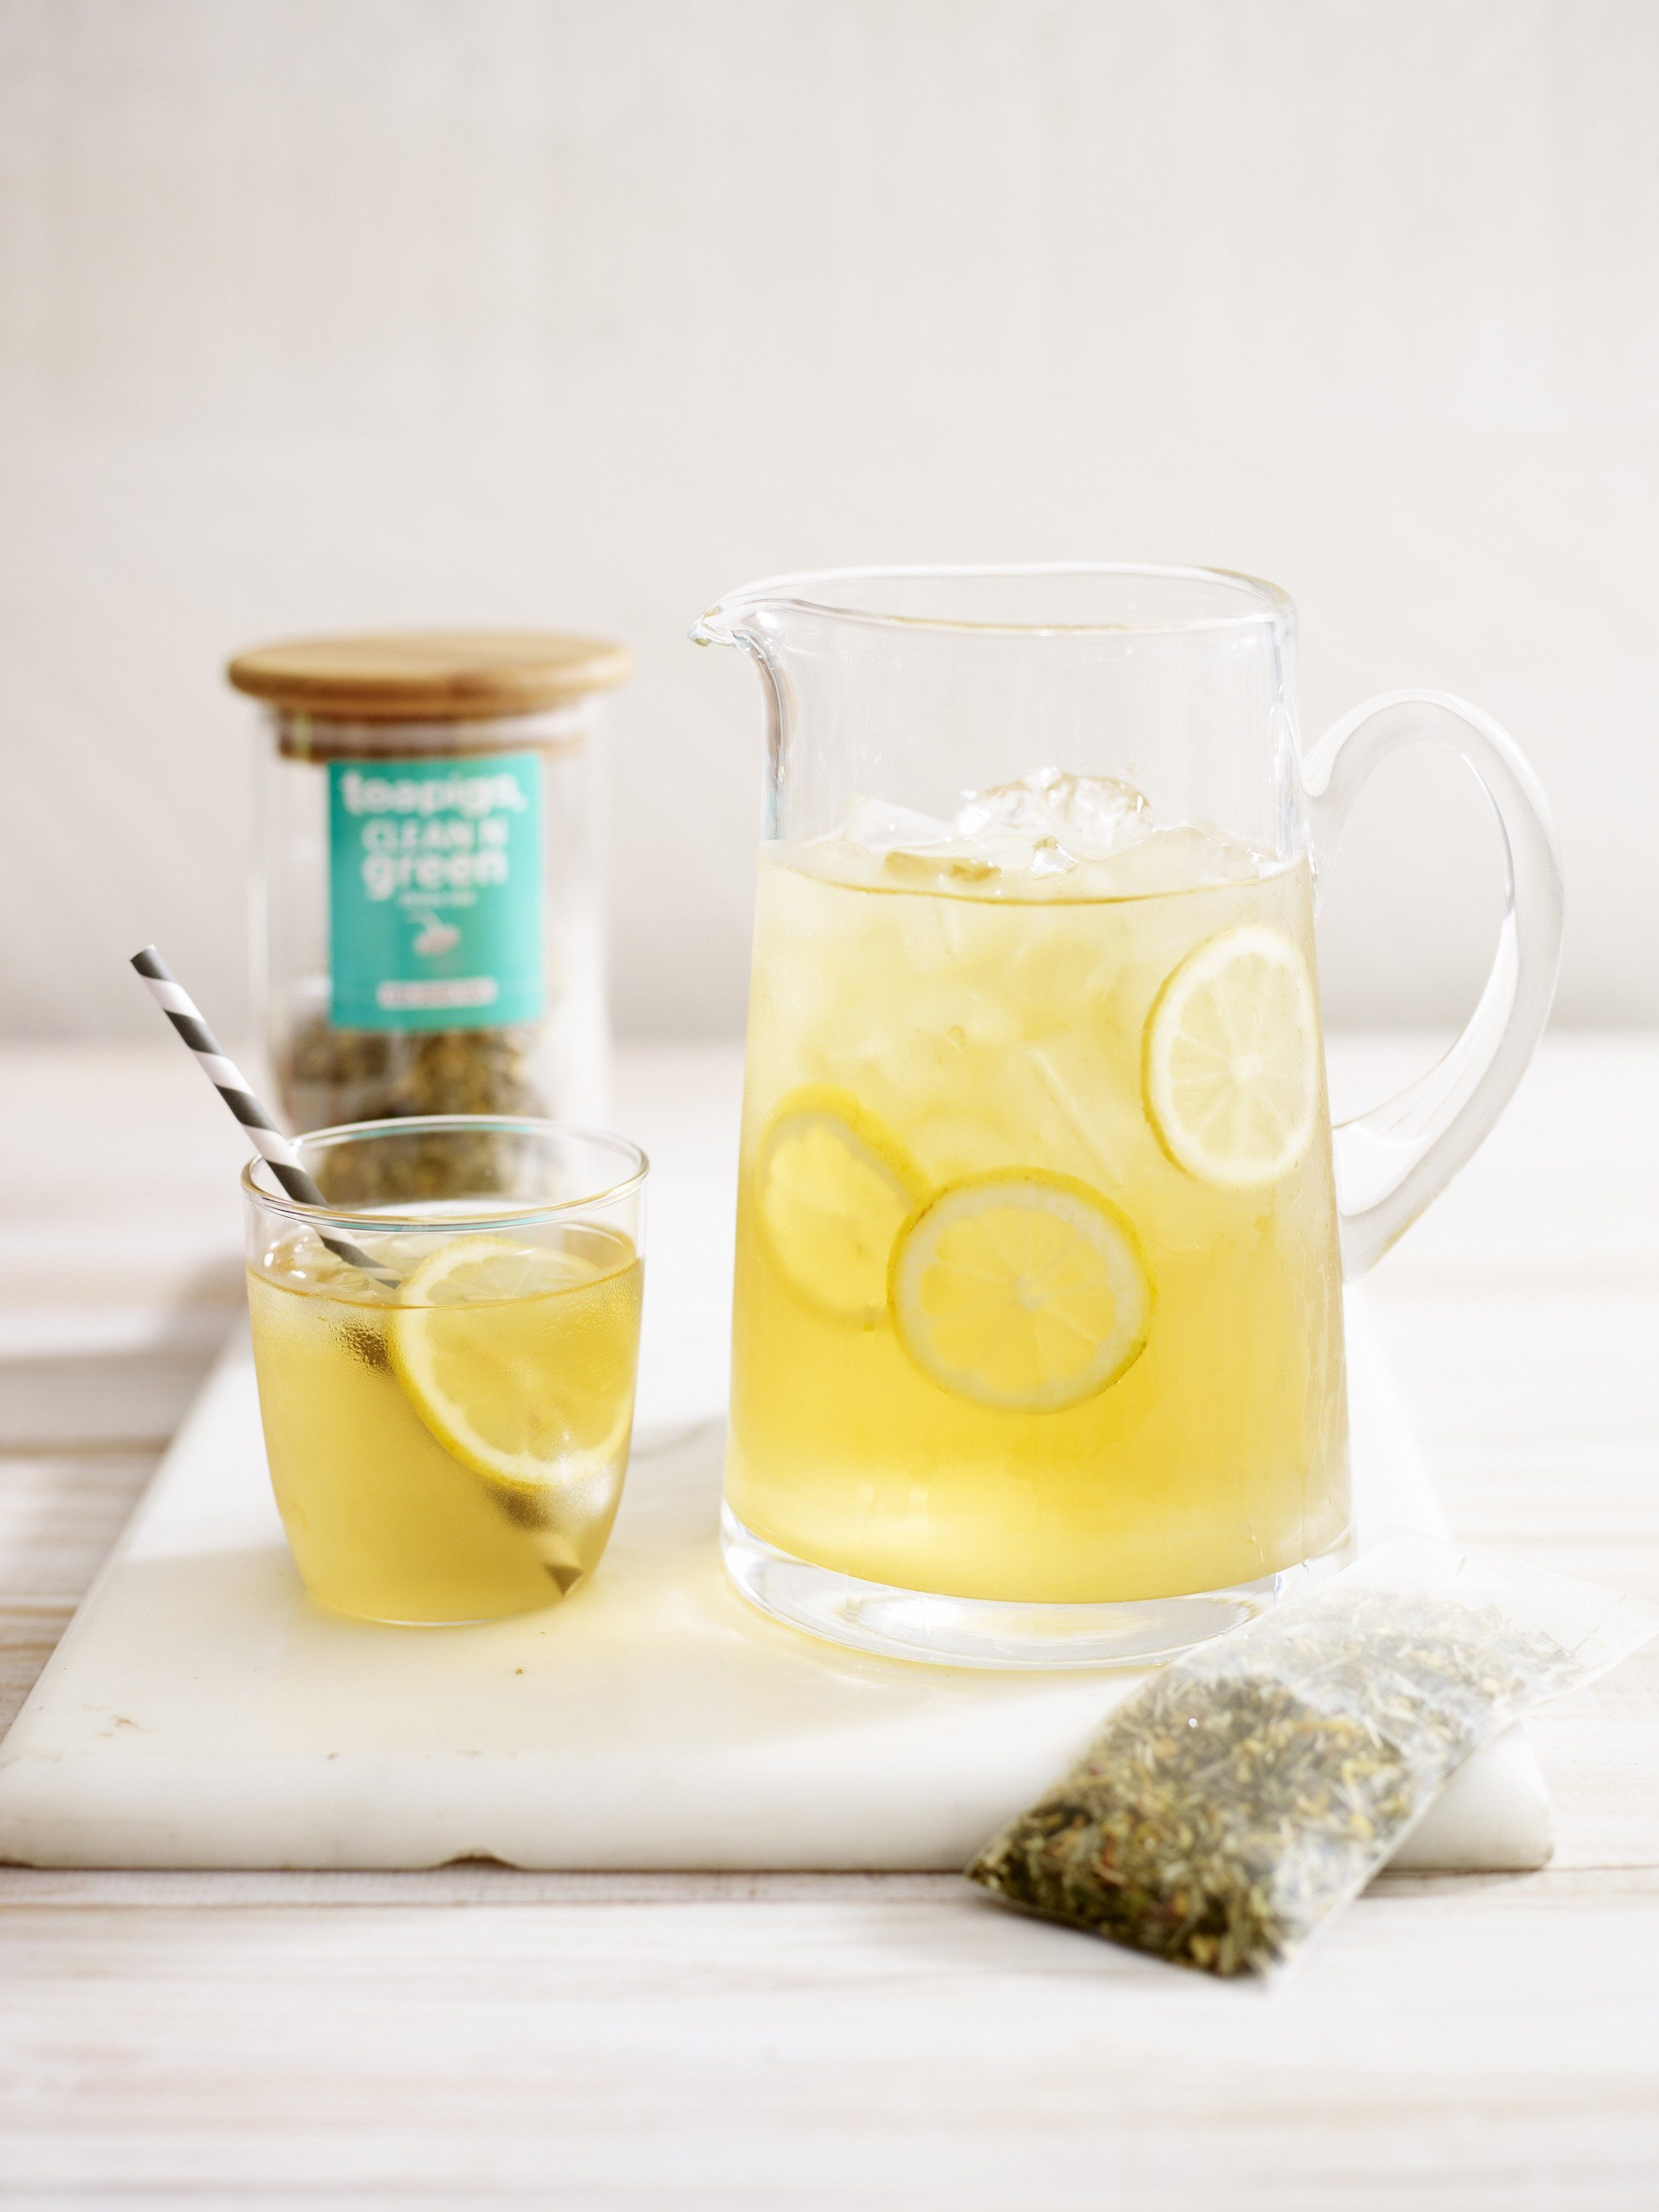 TeaPigs Bright n Green Iced Tea